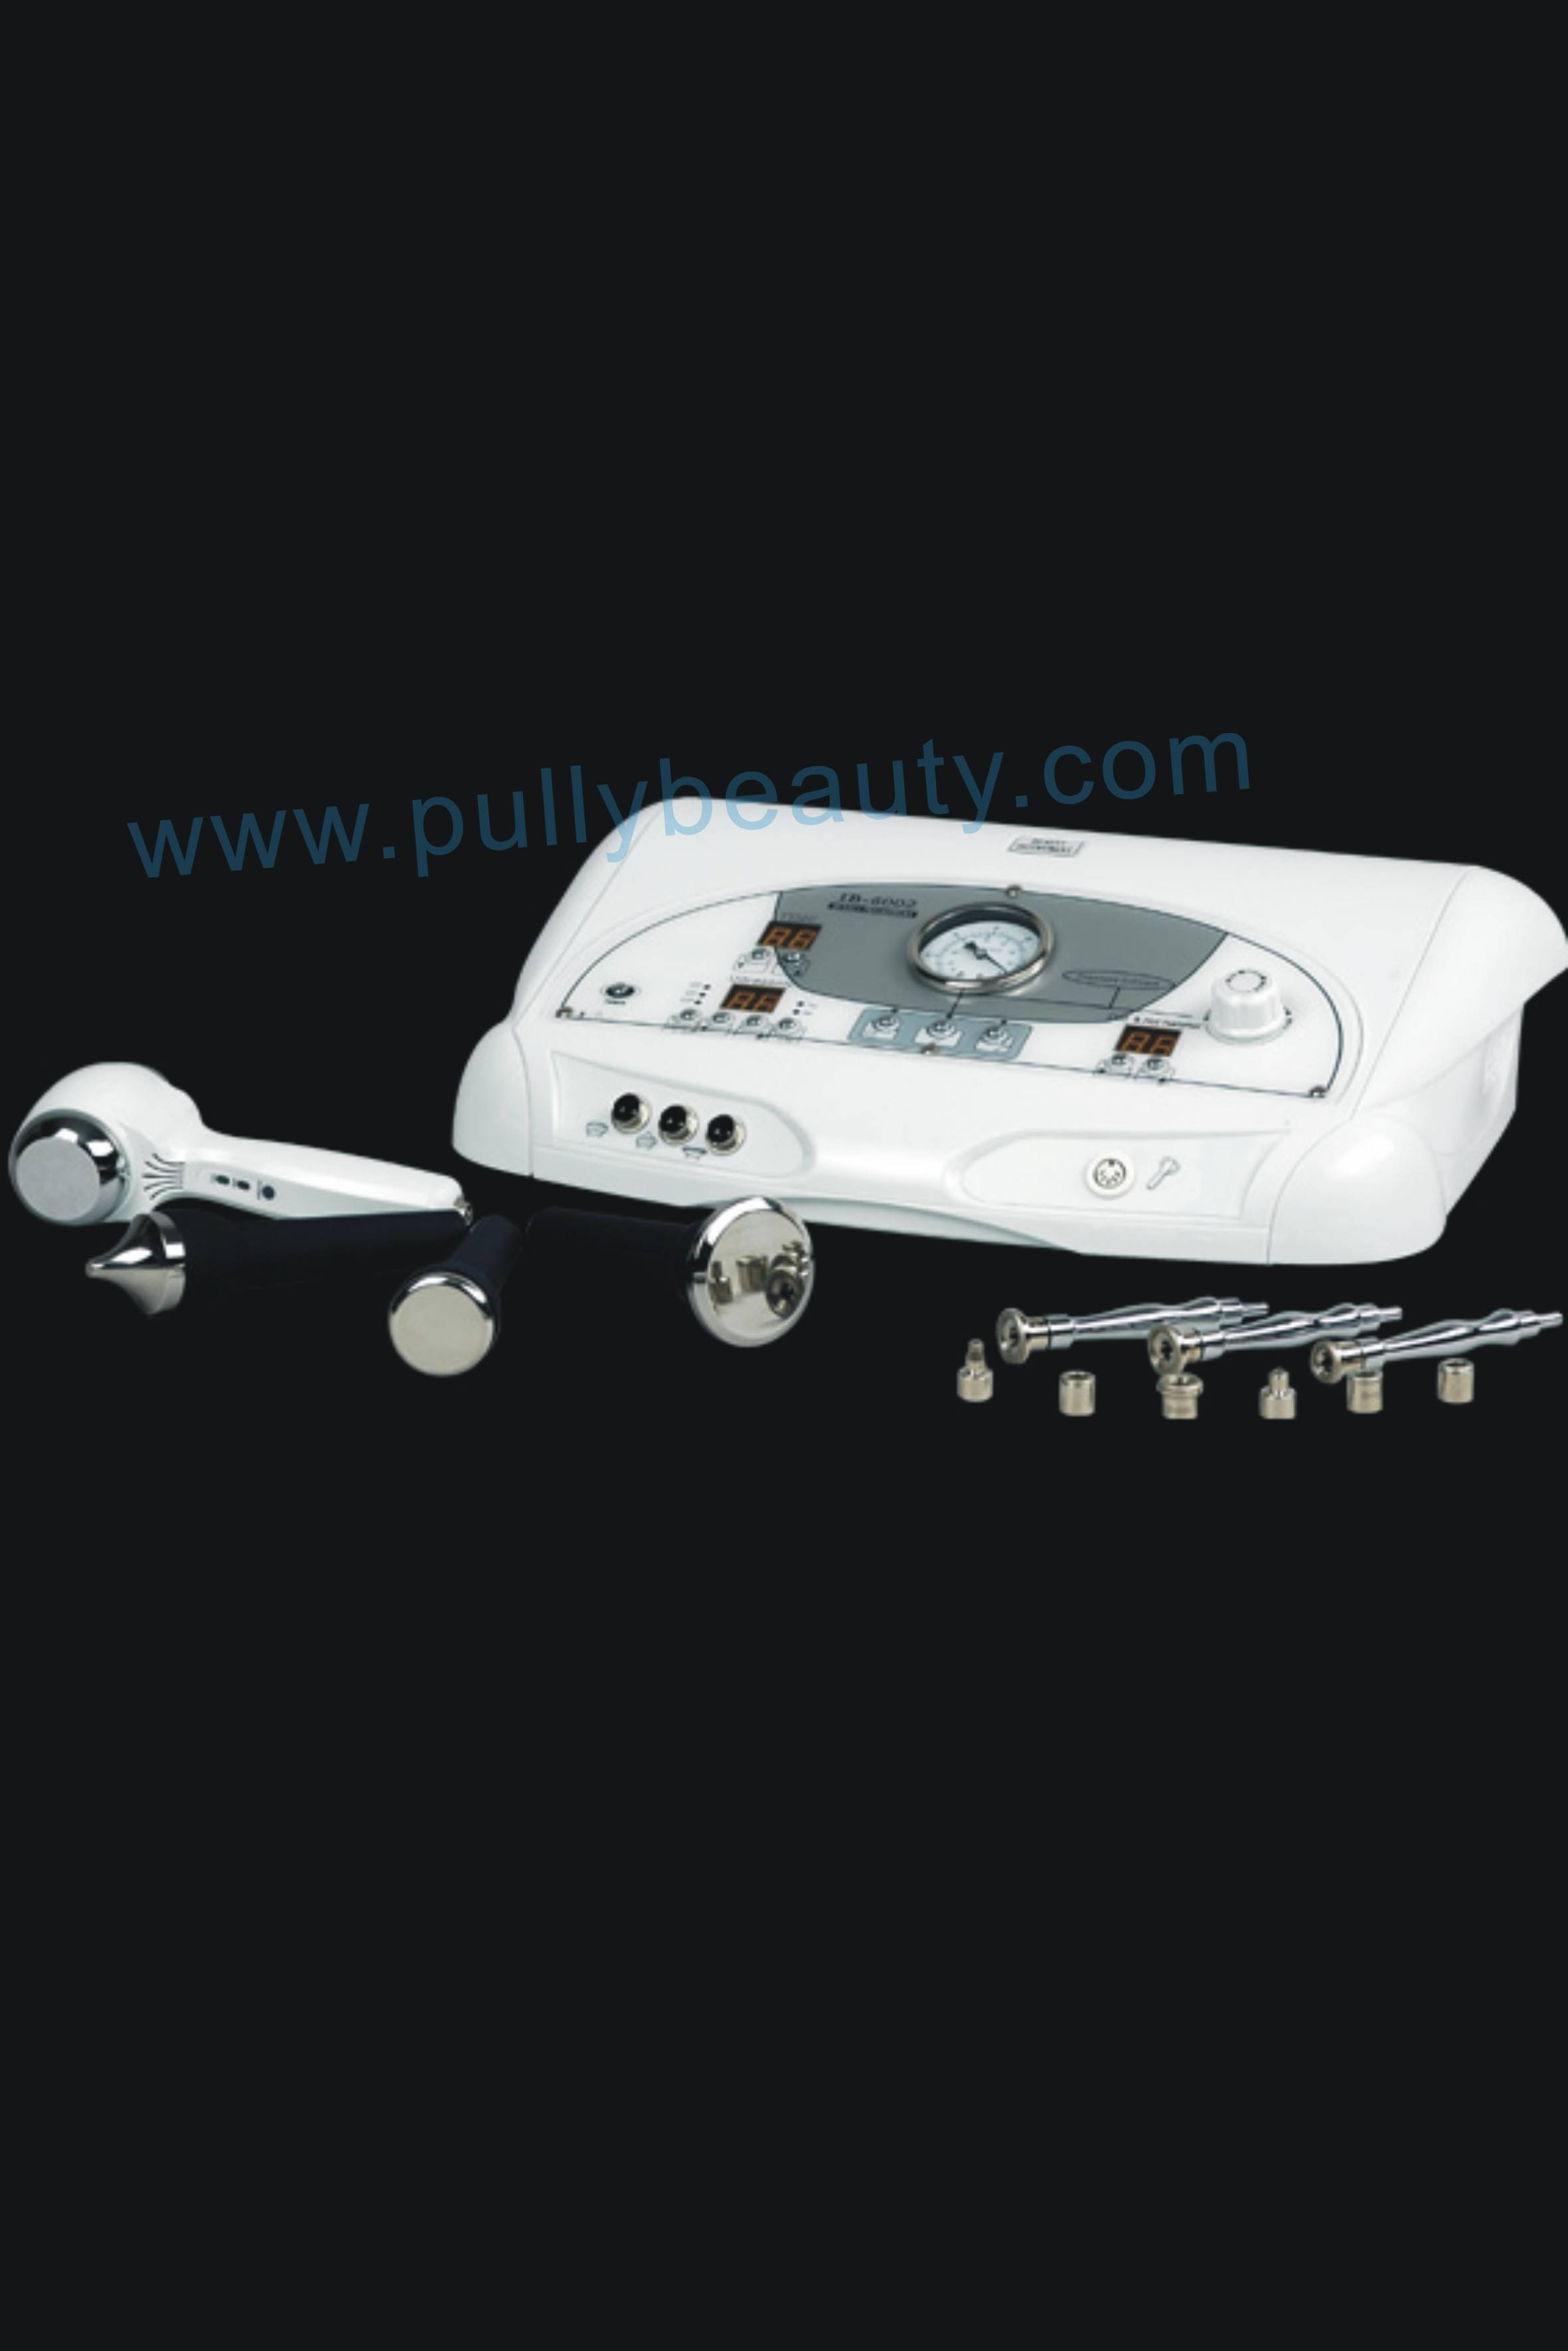 3 in 1 microdermabrasion instrument